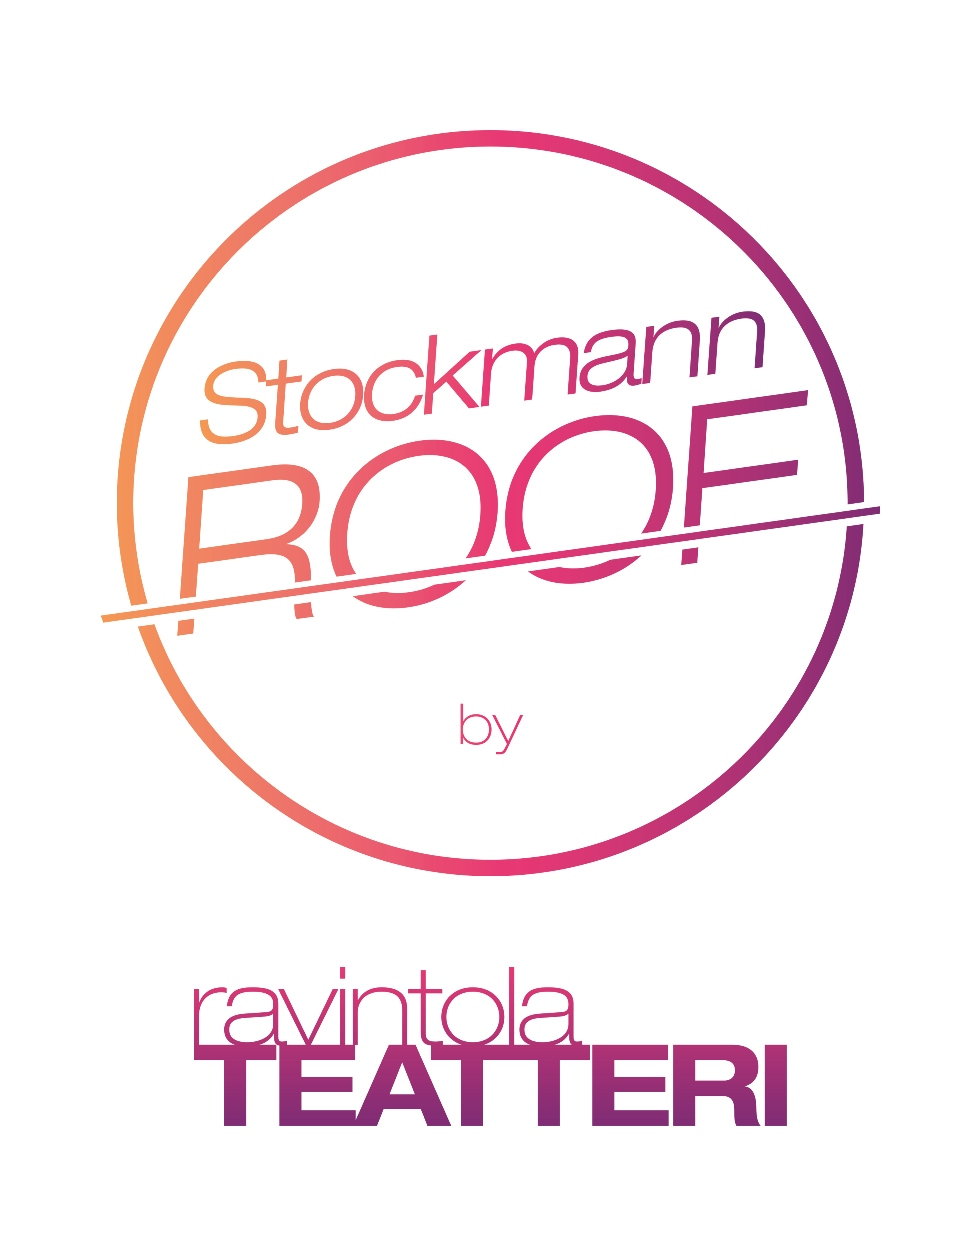 Stockmann Roof -logo 980 x 1255.jpg